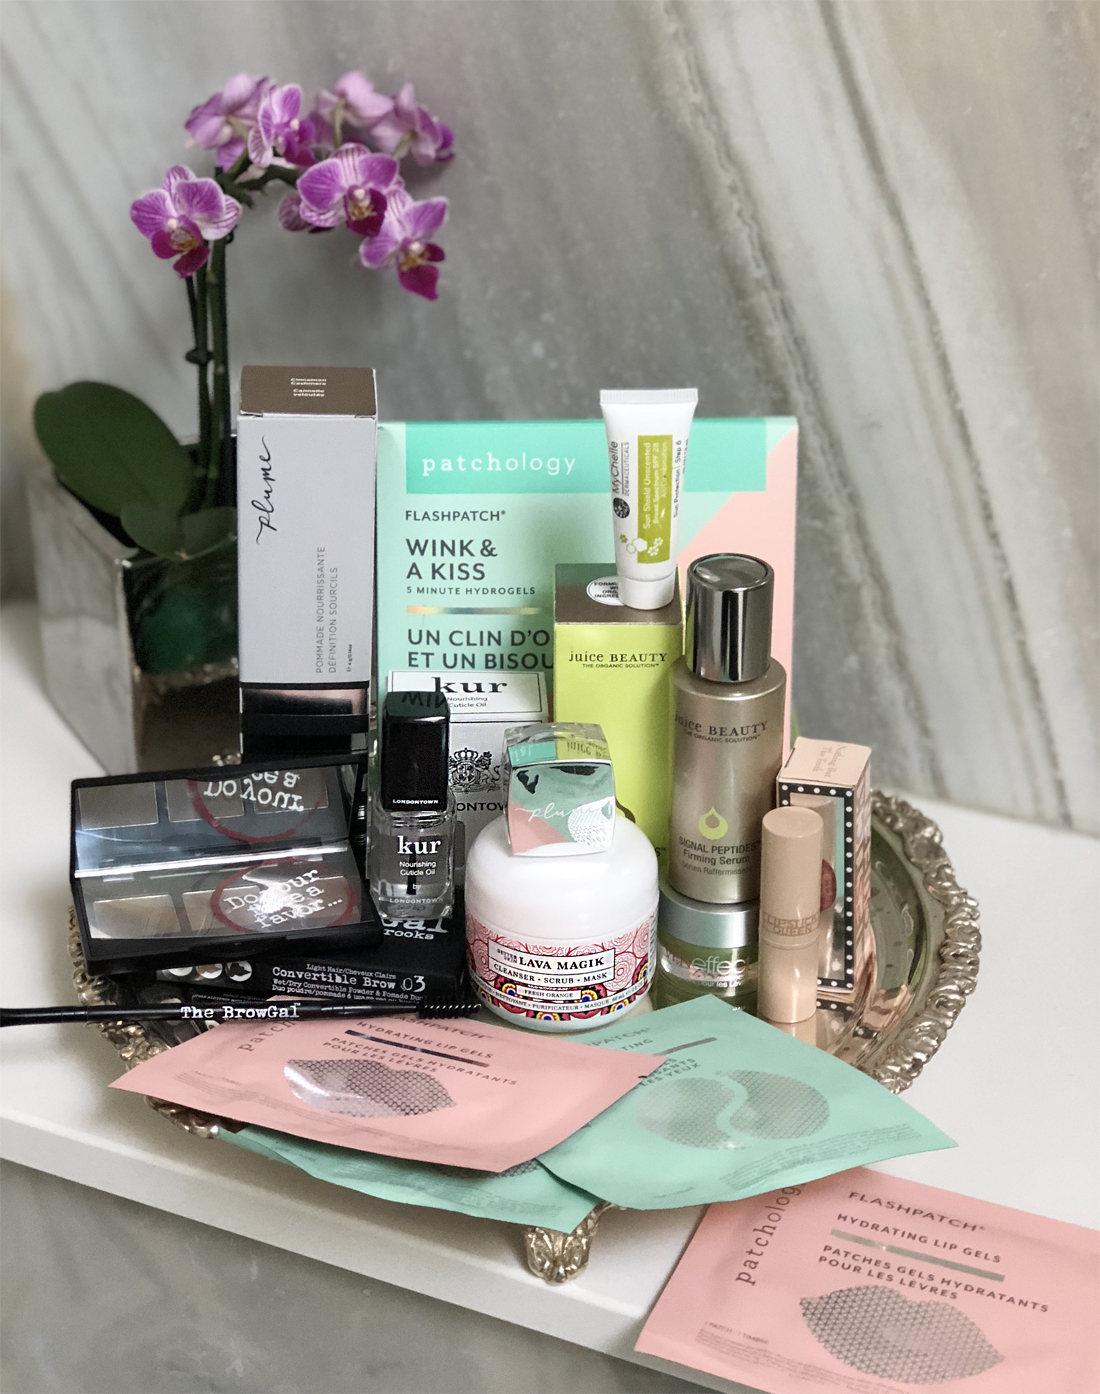 Murale Shoppers Drug Mart – Favorite Products for Spring 2018